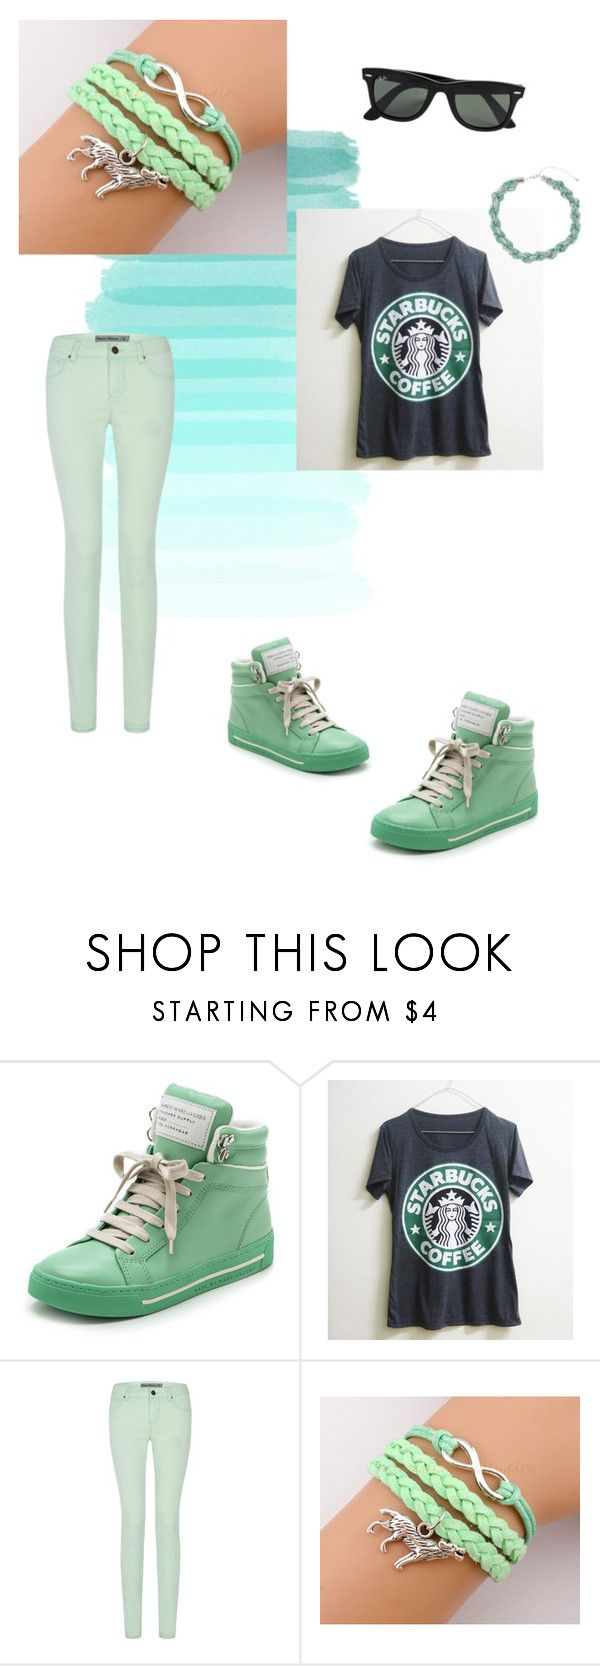 """Mint green outfit"" by super16 ❤ liked on Polyvore featuring GUESS, Marc by Marc Jacobs, Ray-Ban and Dorothy Perkins"